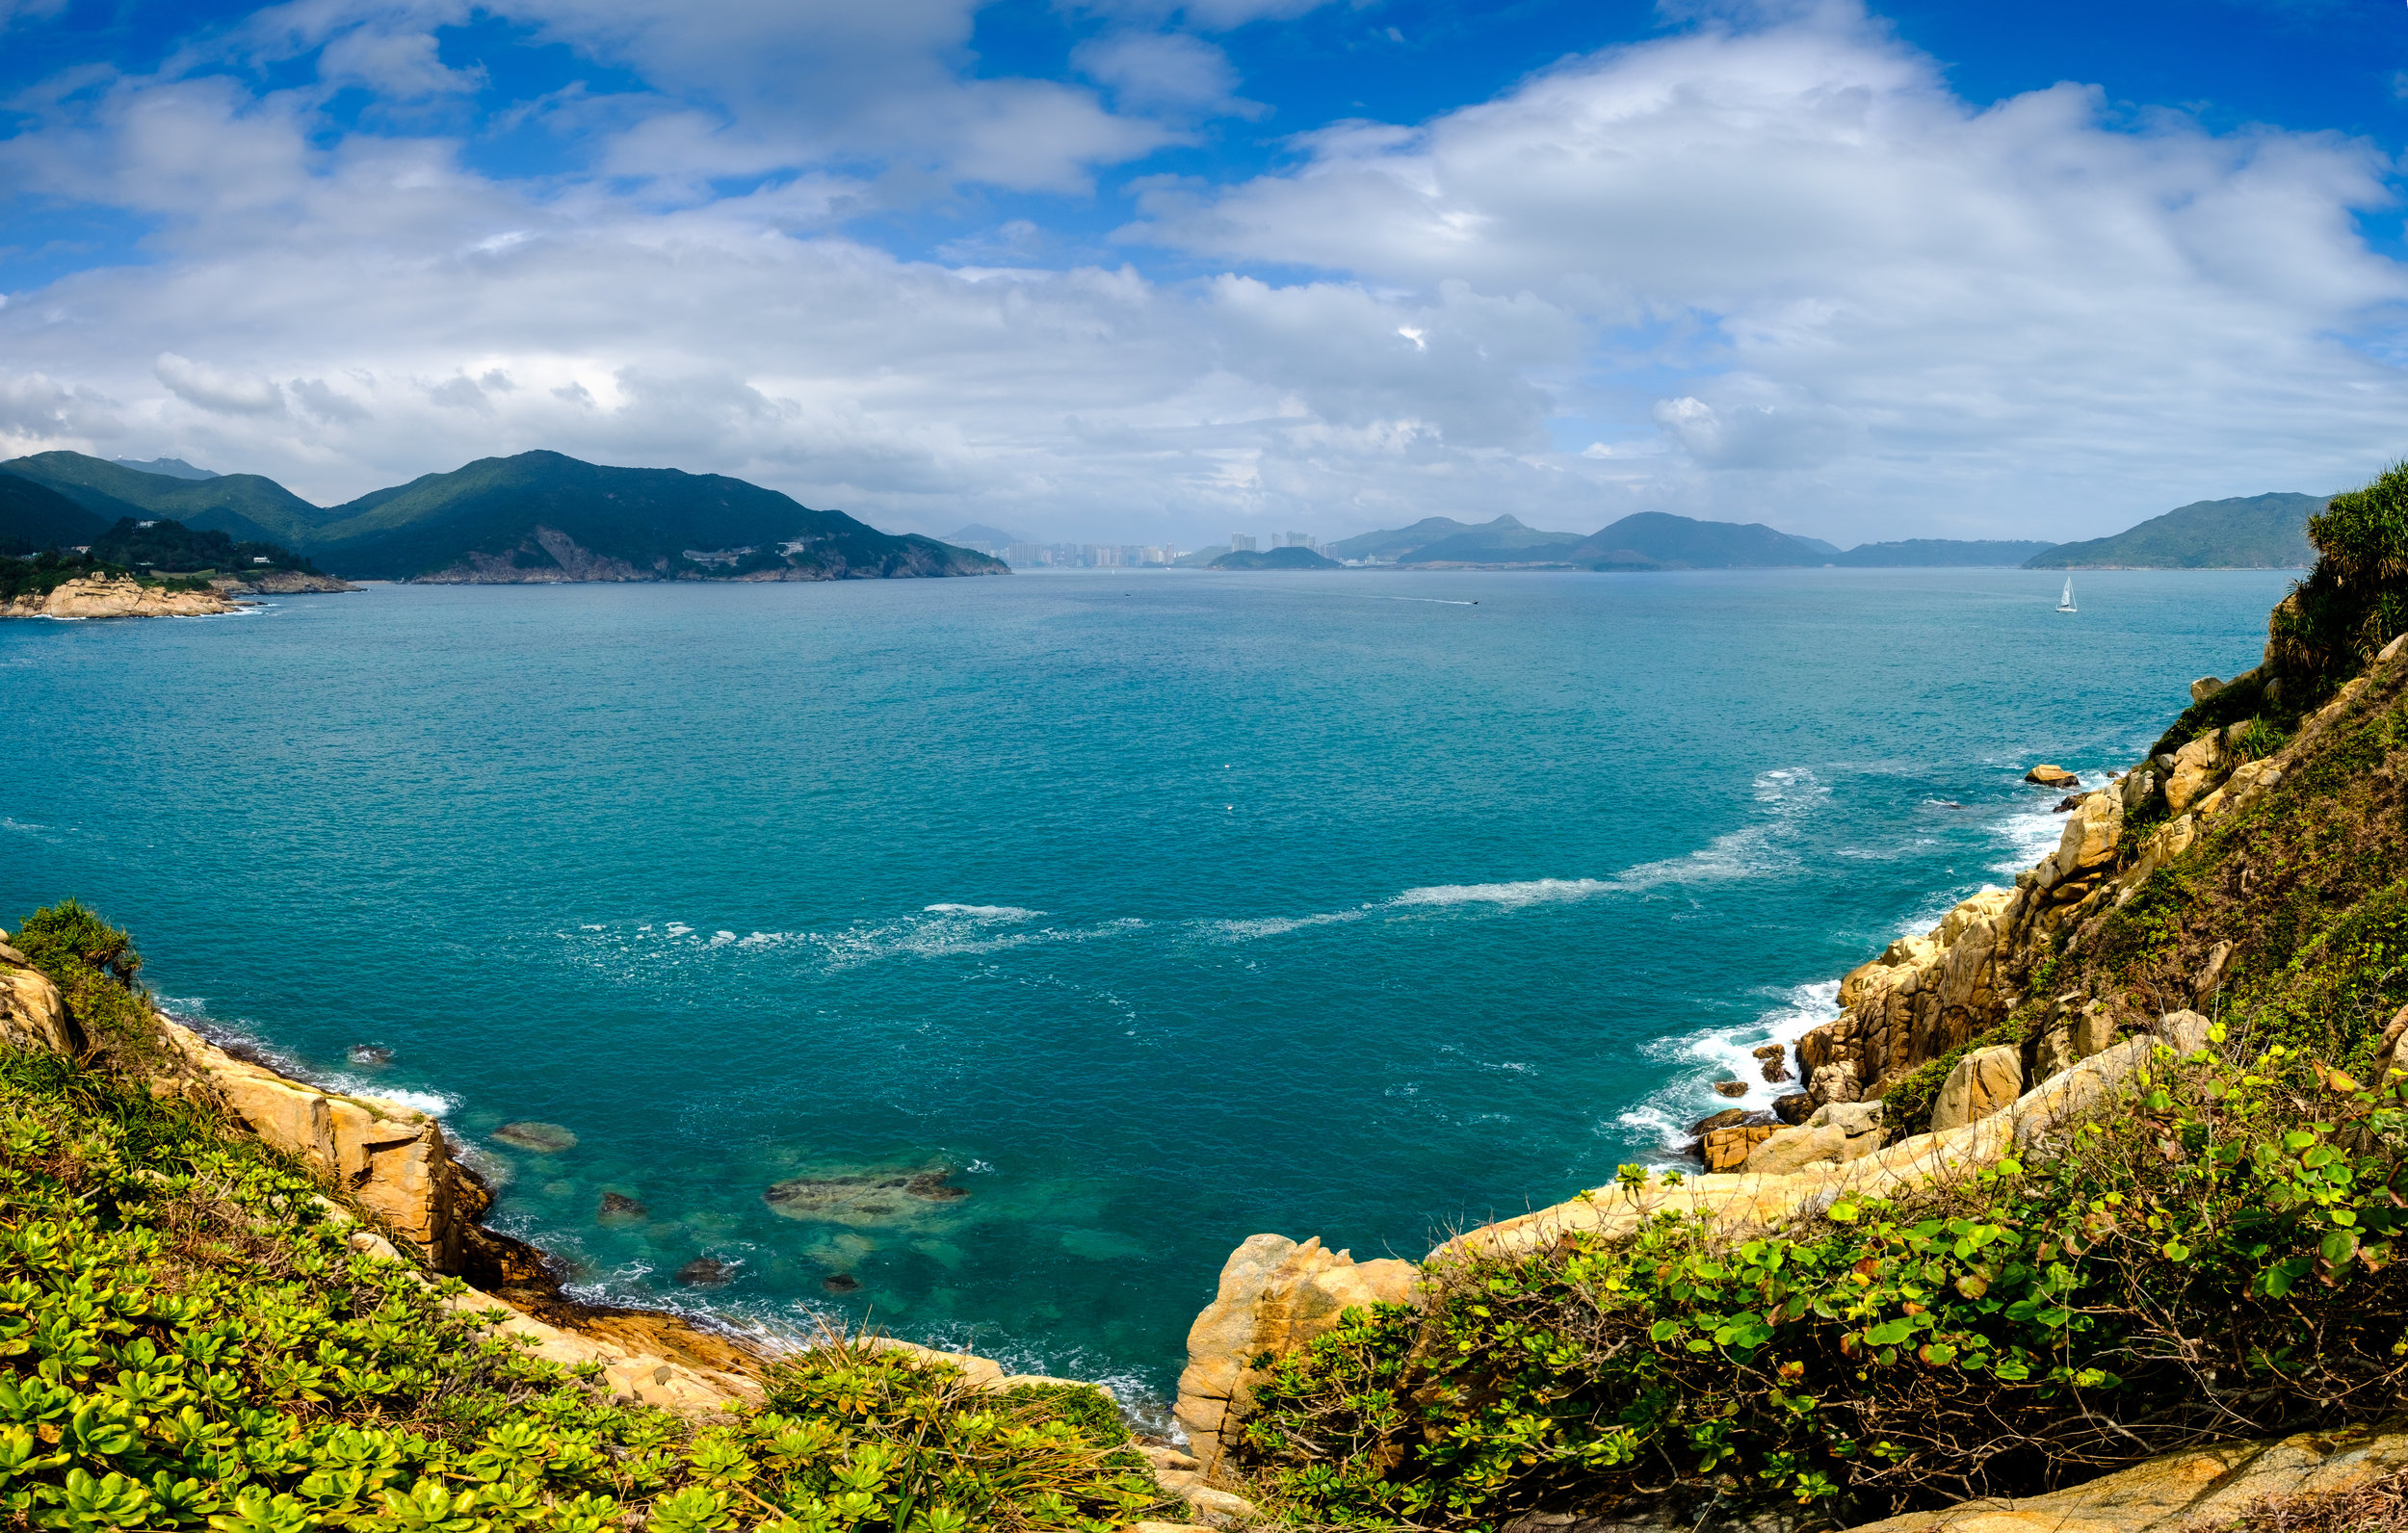 View from Shek O towards Hong Kong over the ocean